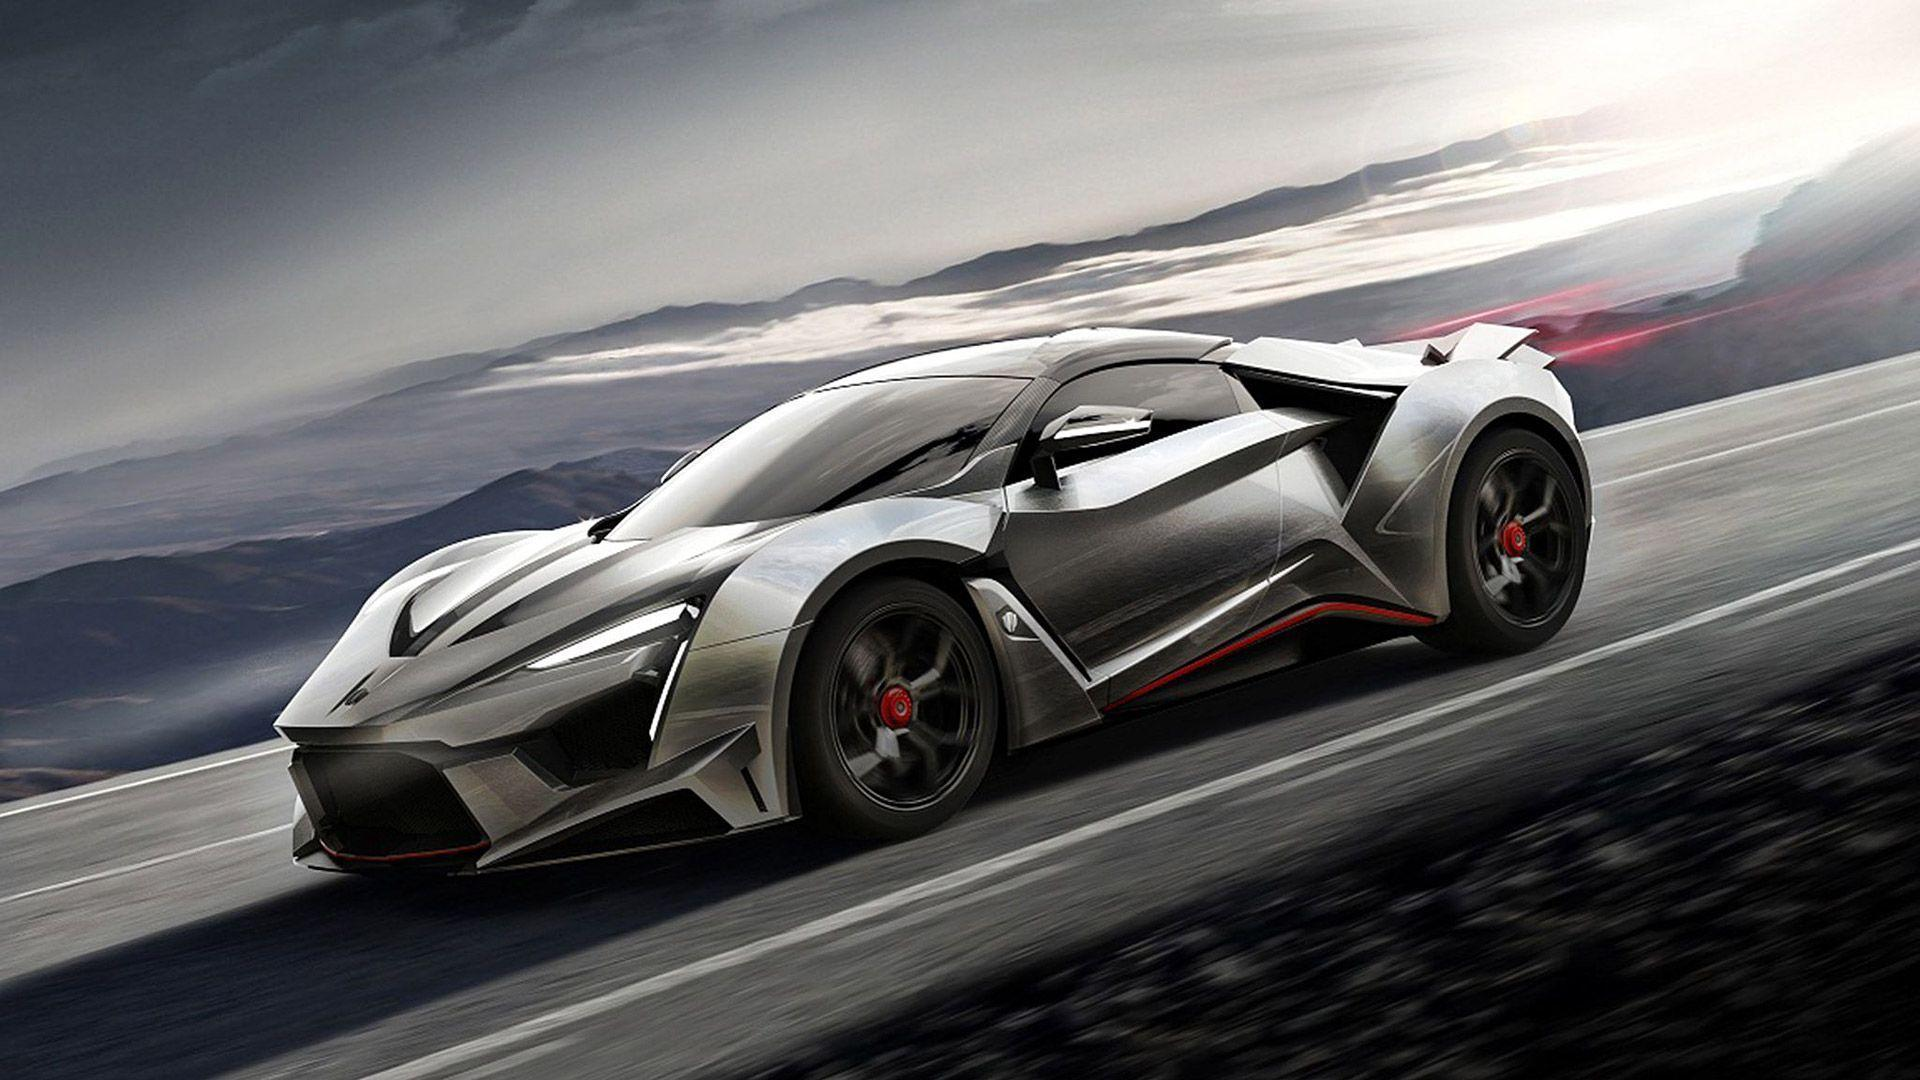 W motors fenyr supersport wallpapers wallpaper cave - Lykan hypersport wallpaper 1920x1080 ...